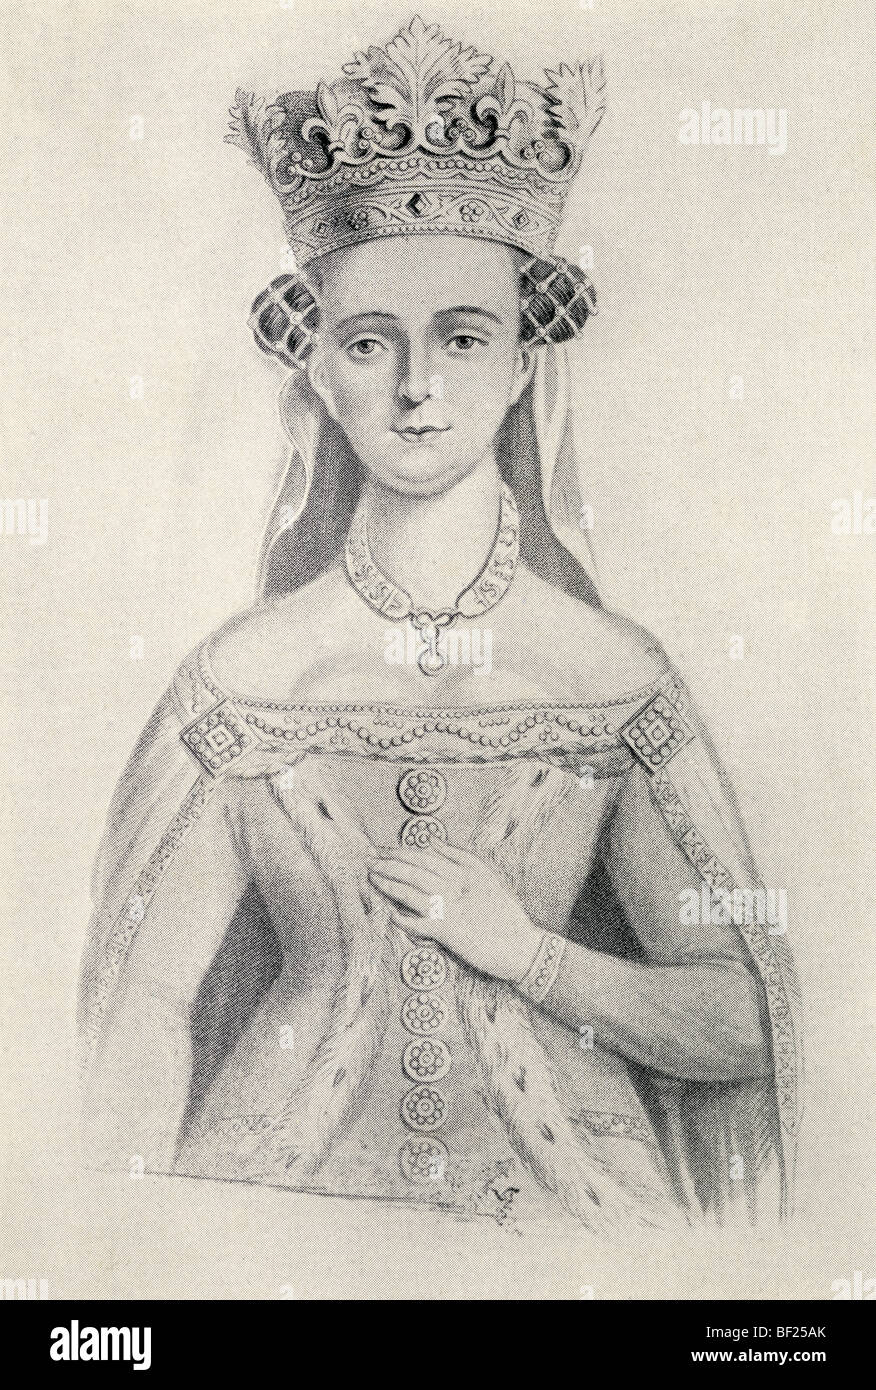 Joan of Navarre circa. 1370 to 1437. Queen Consort of England through marriage to King Henry IV of England. - Stock Image